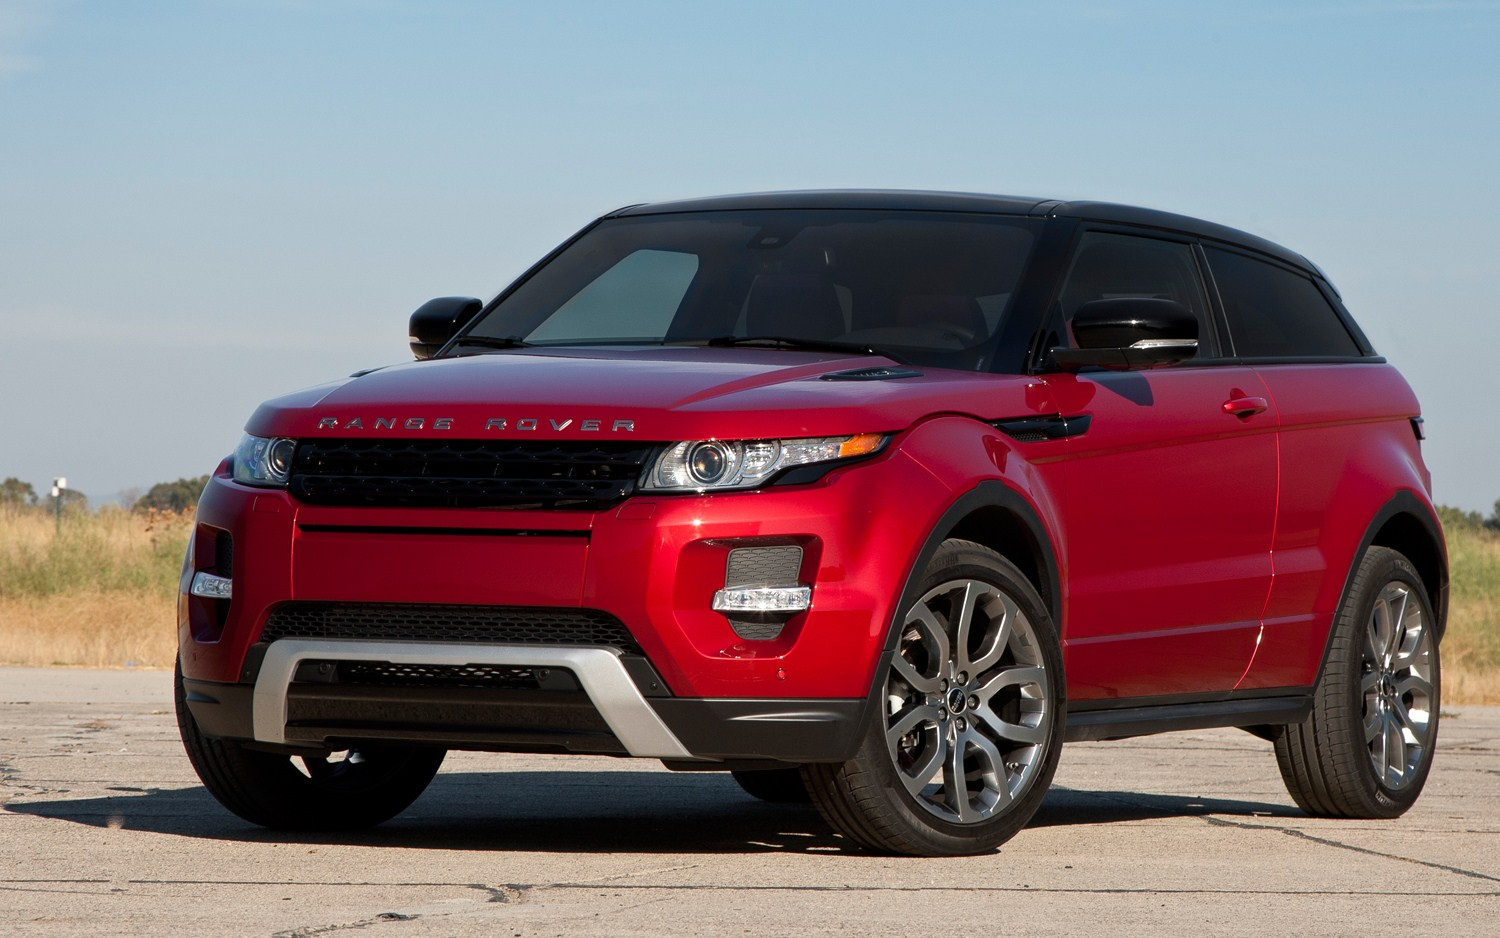 land rover range rover evoque pure suv cars prices wallpaper specs review. Black Bedroom Furniture Sets. Home Design Ideas